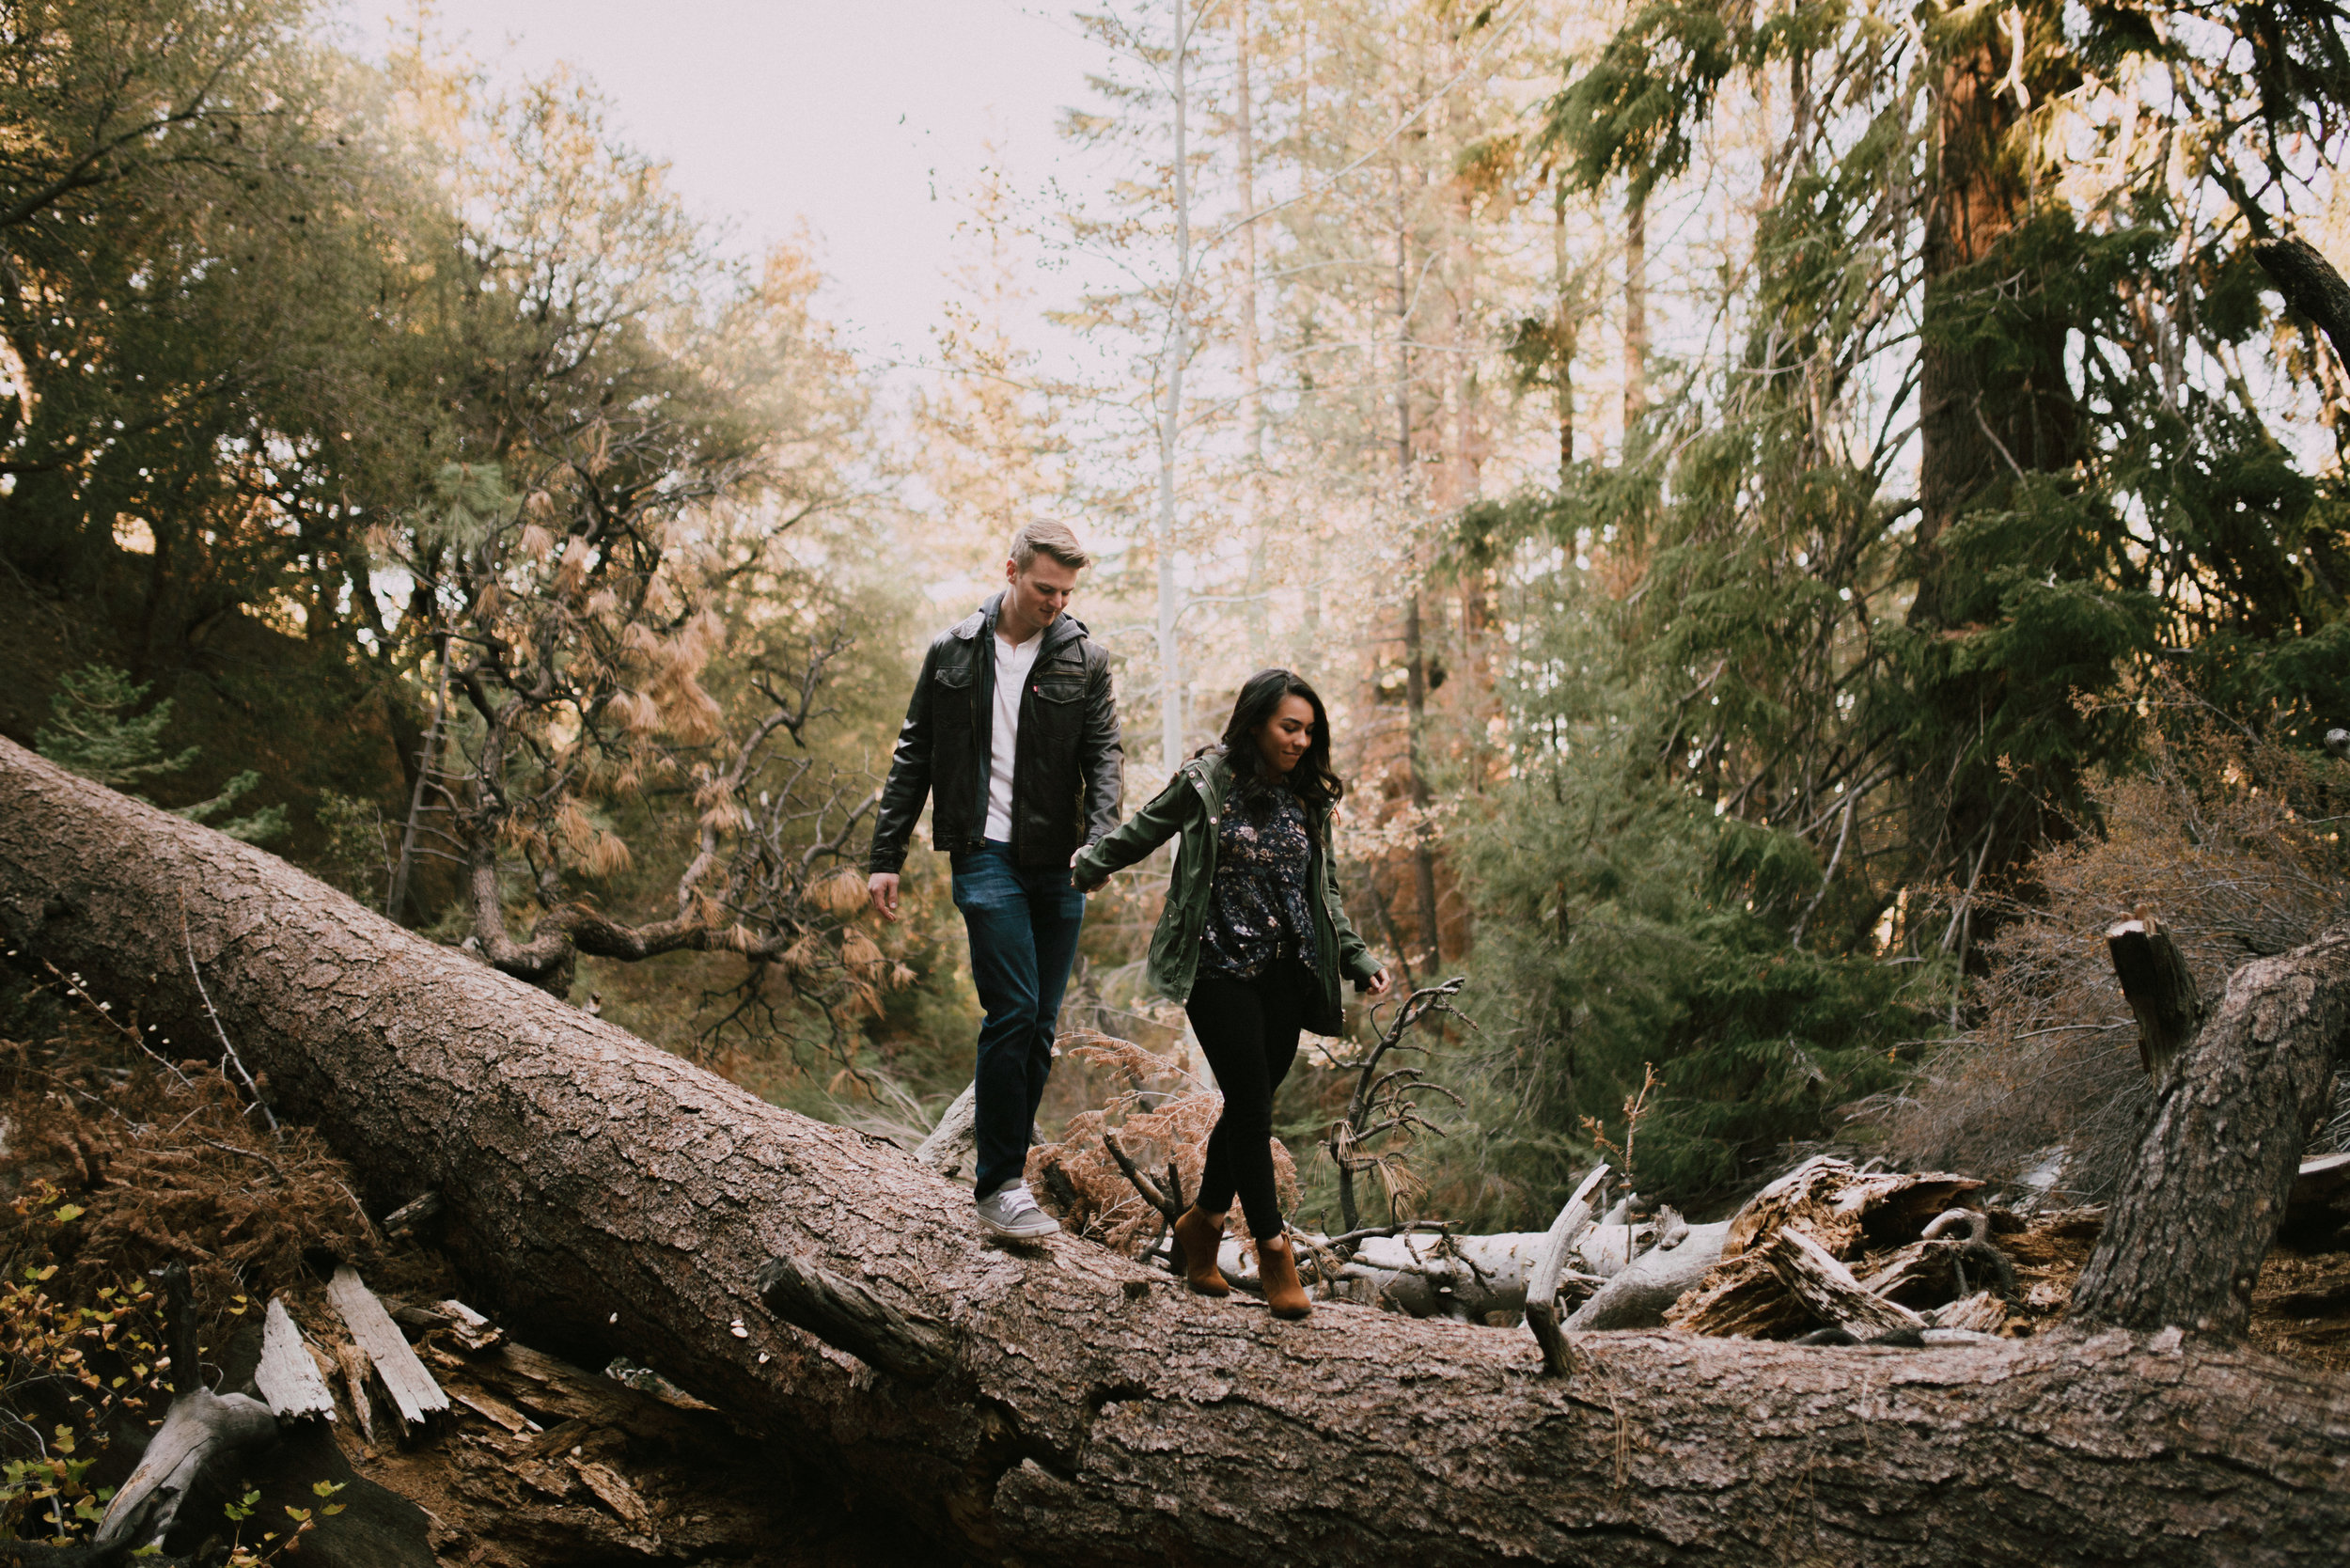 Kevin & Emily Engagment - Pine Mountain Club - Jake and Kim Photography-1.jpg